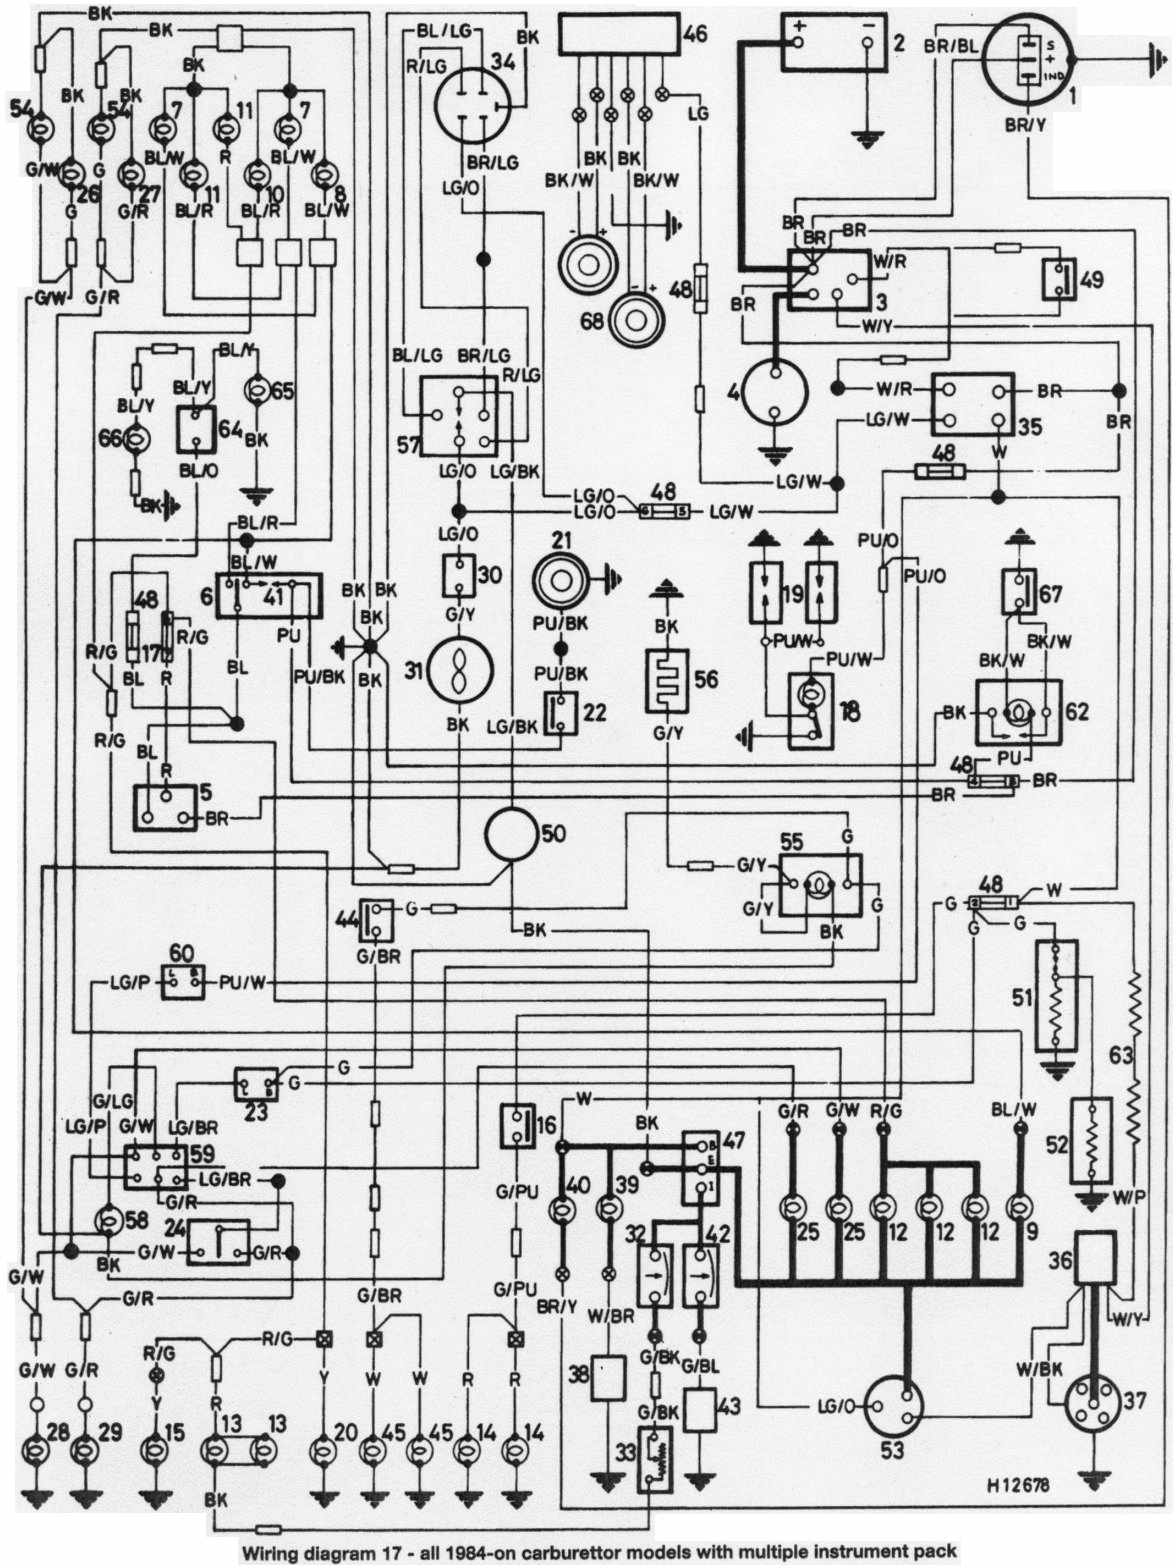 wiring diagram of 1984 onwards all mini series with multiple instrument pack?t=1508499130 mini car manuals, wiring diagrams pdf & fault codes mini r56 wiring diagram pdf at n-0.co